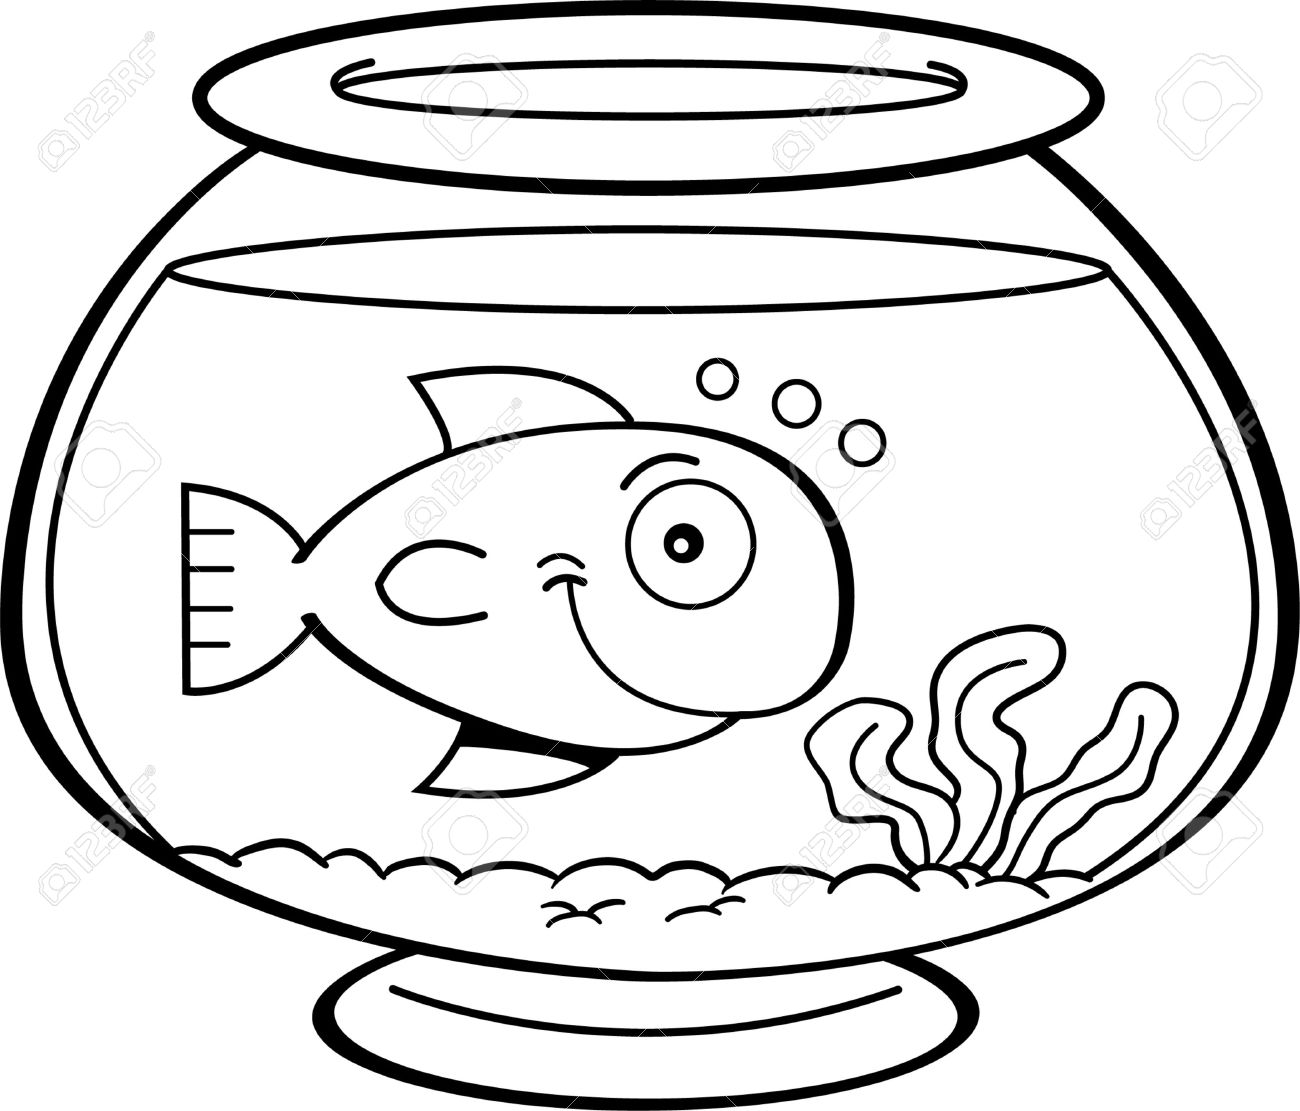 Images free download best. Fish bowl with fish black and white clipart